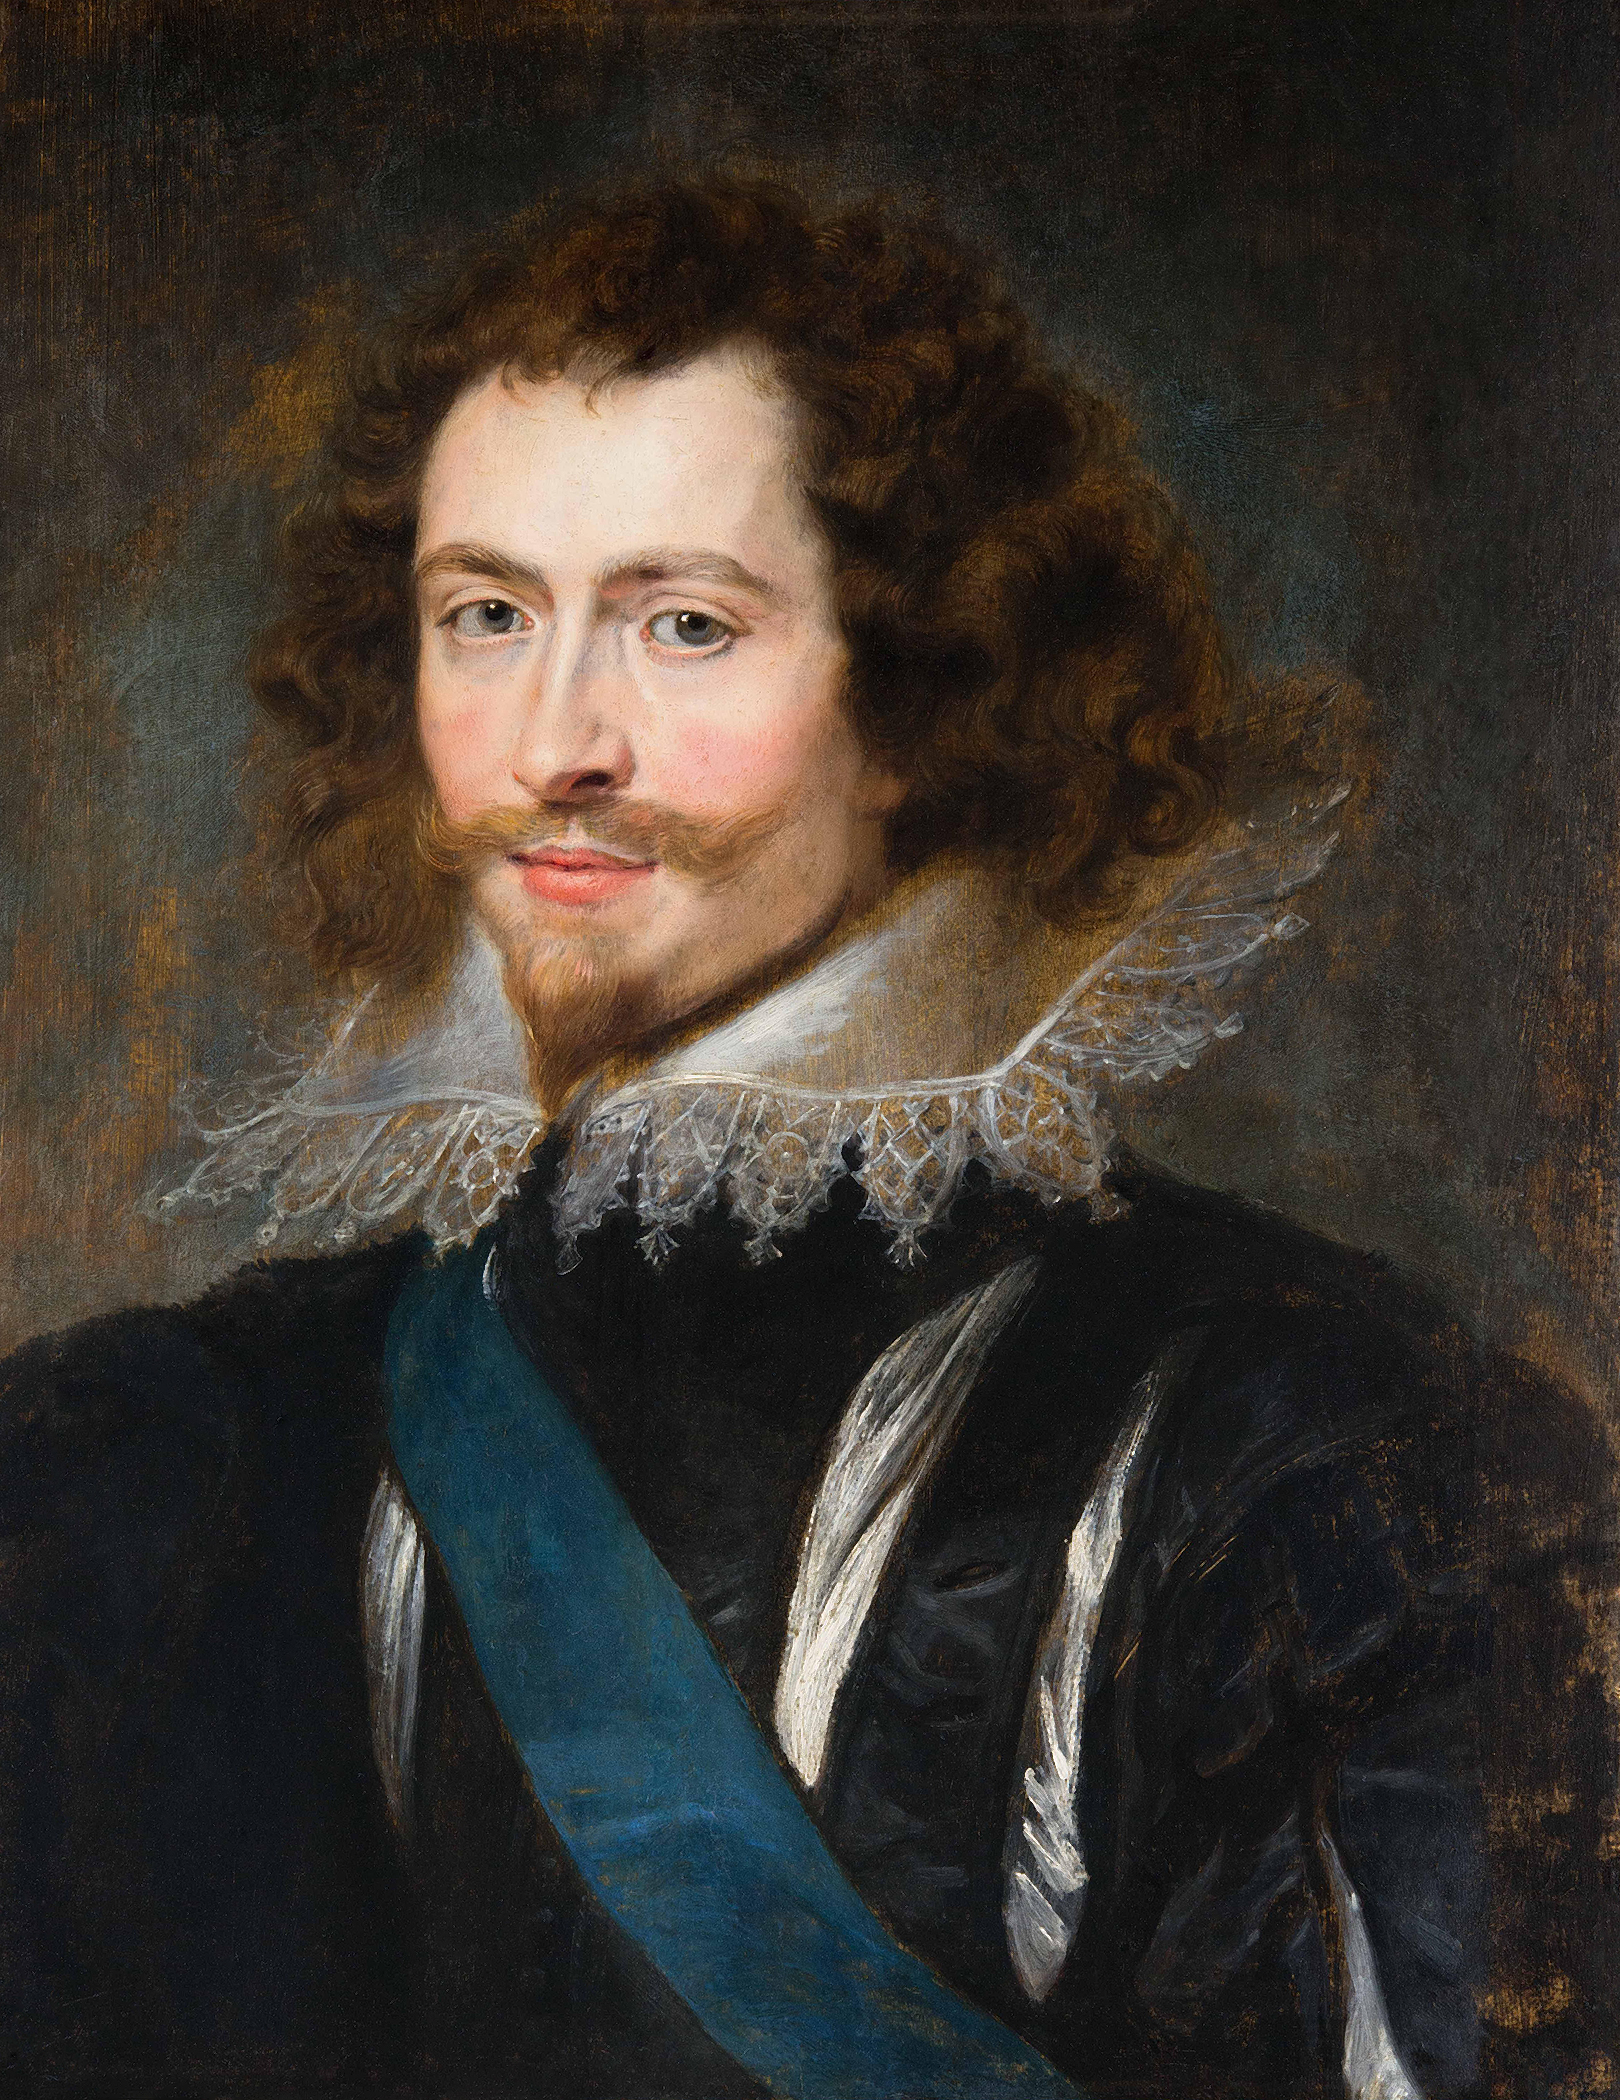 Portrait of George Villiers (1592-1628), Viscount Villiers (1616), Earl of Buckingham (1617), Marquess of Buckingham (1618), Duke of Buckingham (1623), Master of the Horse (1616-1628), Lord High Admiral (1619-1628), Lord Warden of the Cinque Ports (1625-1628), favourite of the Kings of England (James I and Charles I), 1625 | Portraits of Kings